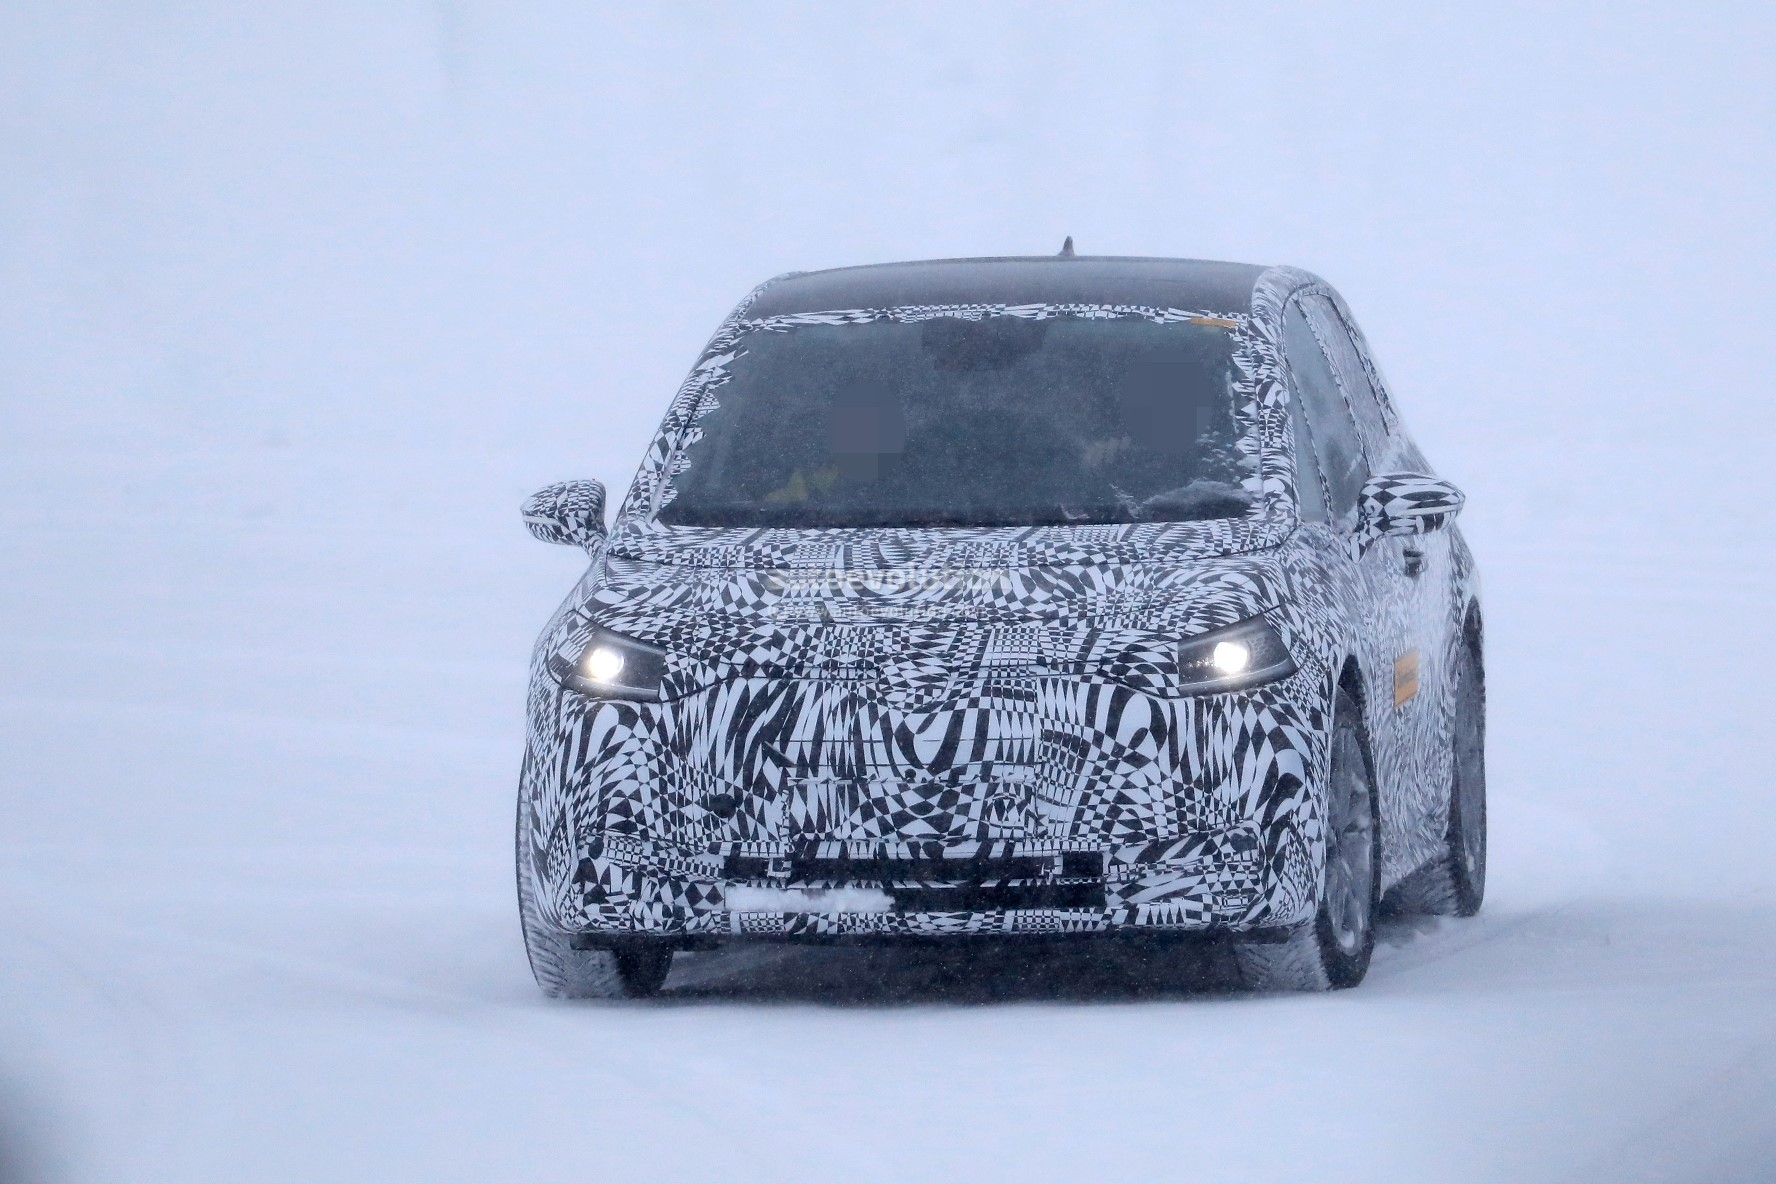 2020-volkswagen-id-spied-testing-near-the-arctic-circle_3